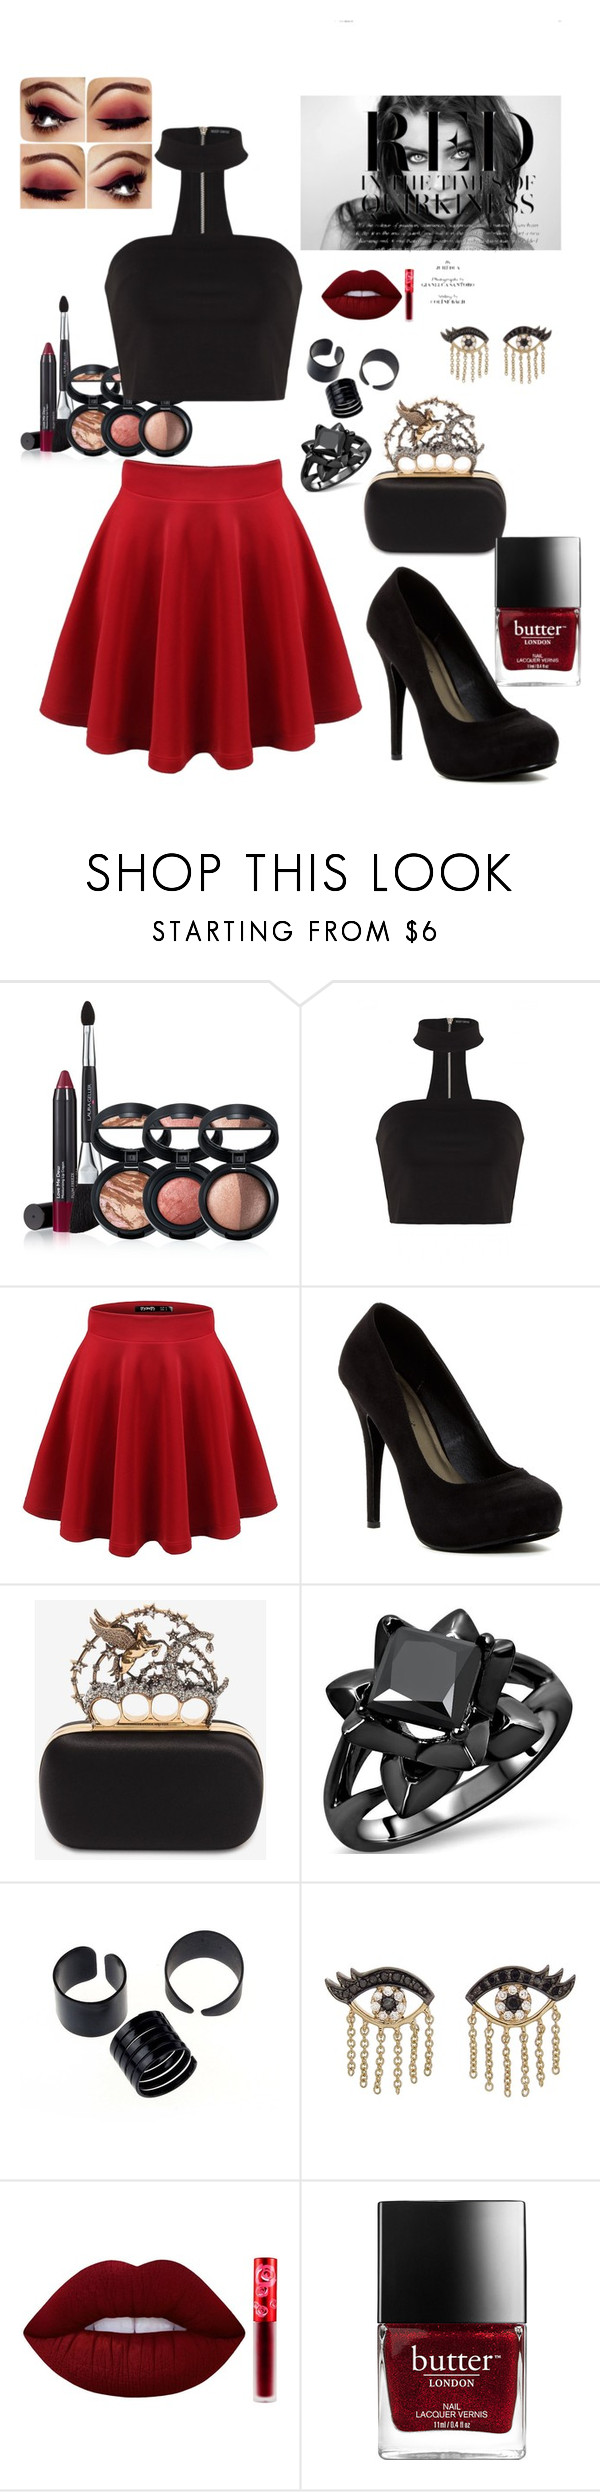 """""""I somehow find You and I collide"""" by gothgirl87454 ❤ liked on Polyvore featuring Laura Geller, Michael Antonio, Alexander McQueen, Sydney Evan and Lime Crime"""